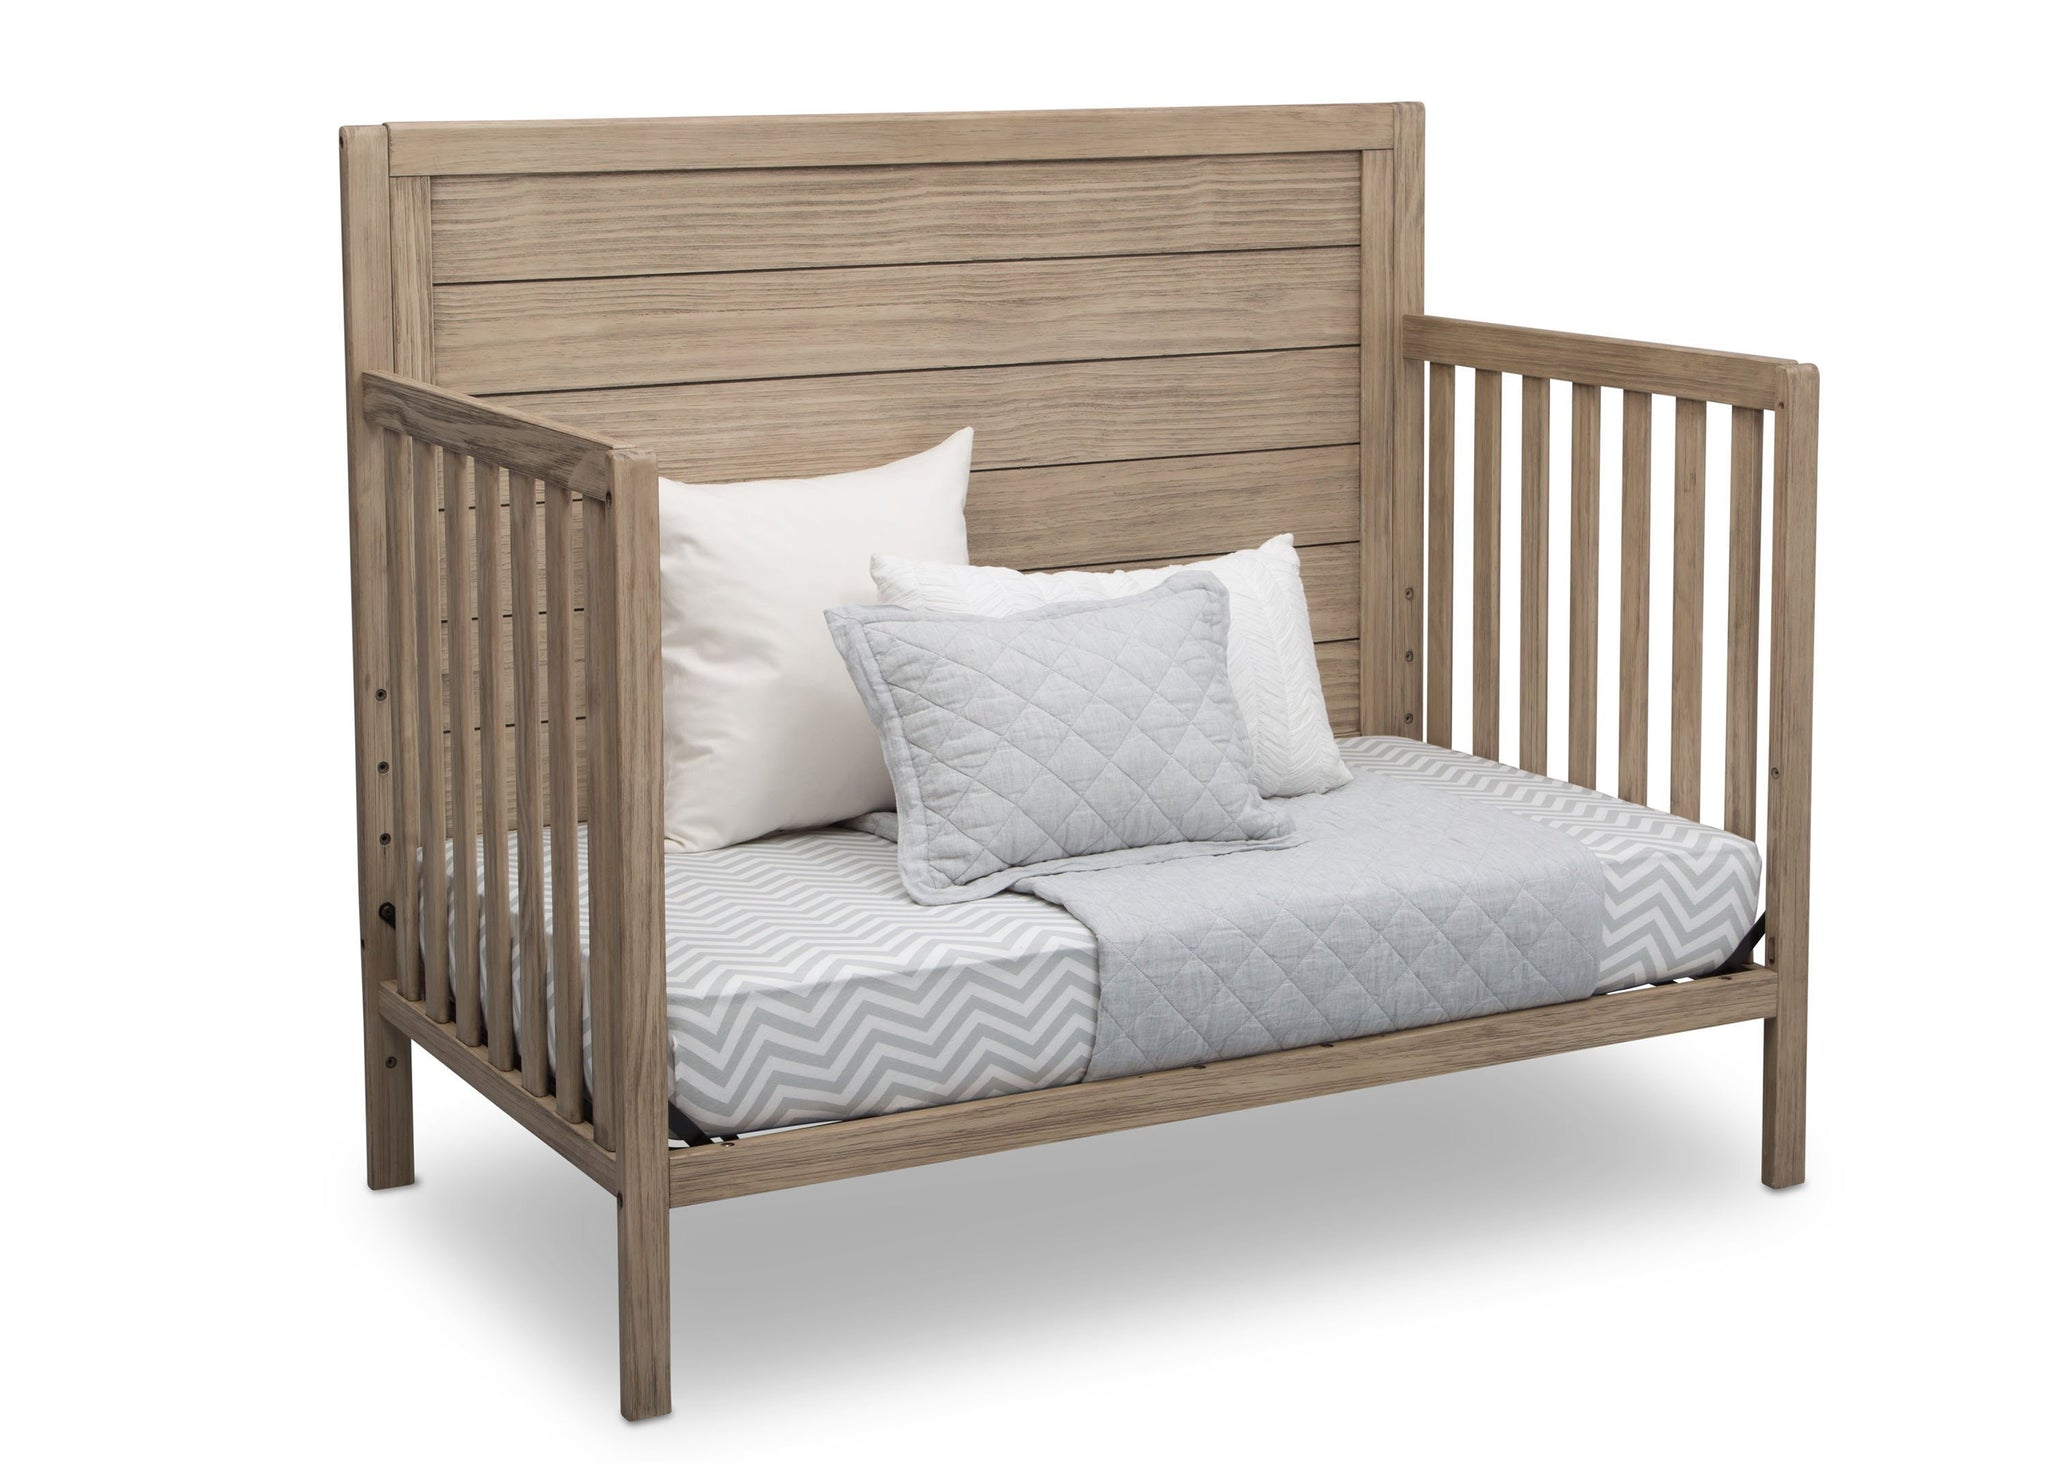 Serta Rustic Driftwood (112) Cambridge 4-in-1 Convertible Crib, Daybed View b5b